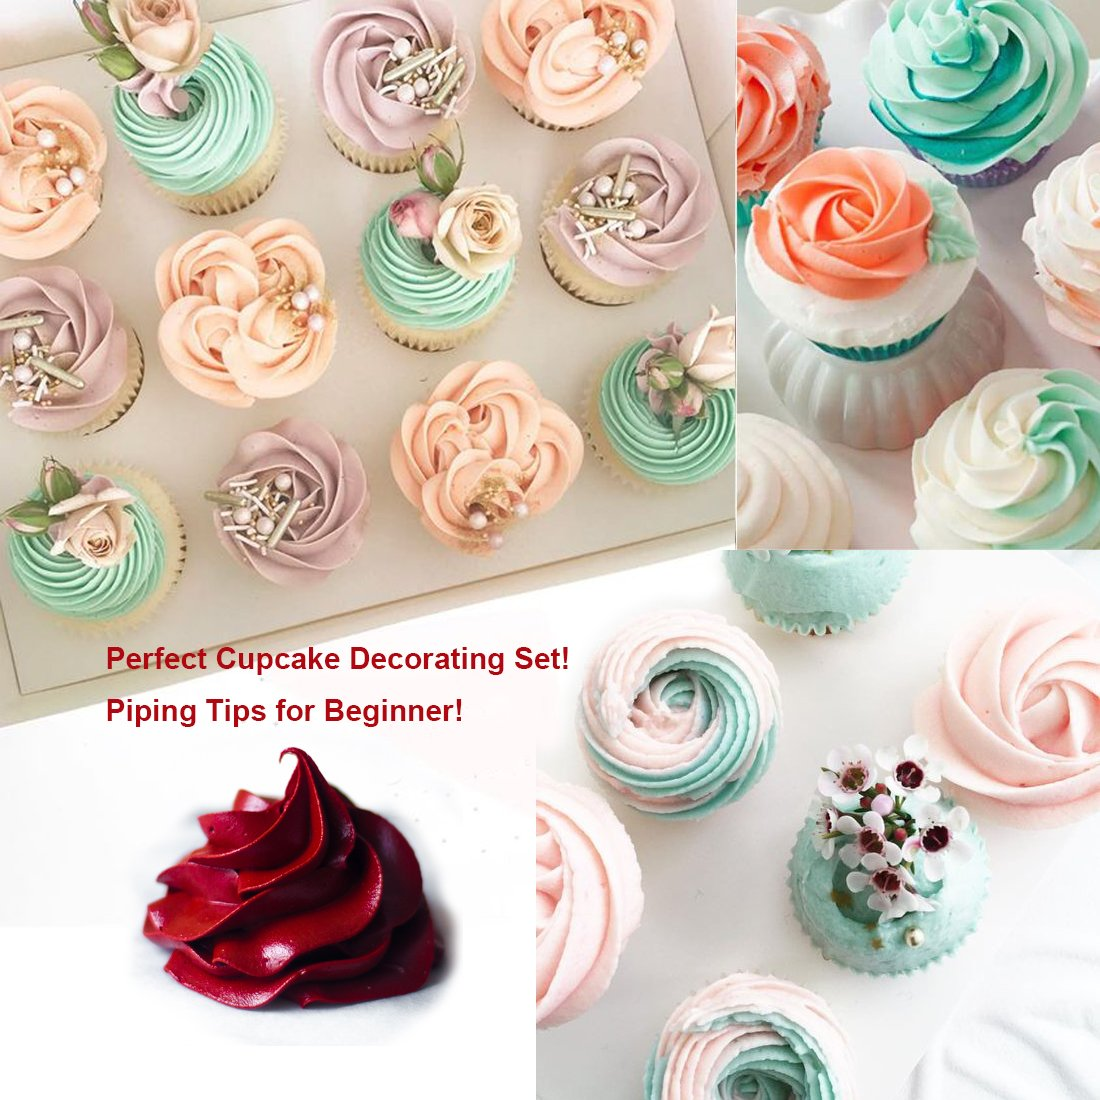 8 Frosting Tip Nozzle Large Icing Piping Tip Cupcake Decorating Tip Set Kit Cake Decorating Supplies 2 Coupler 10 Pastry Bag